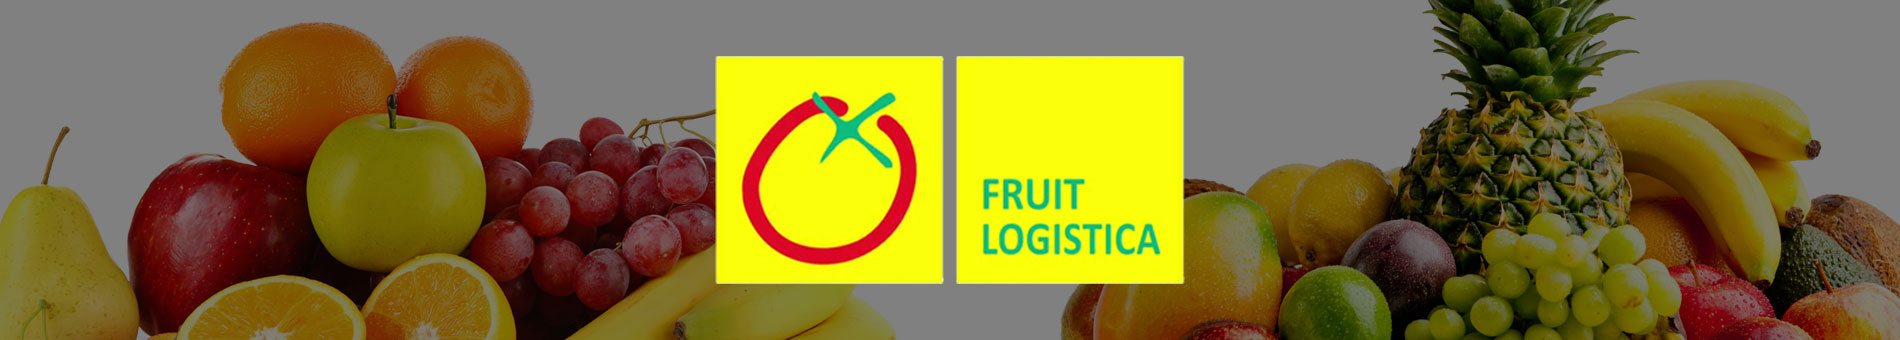 Strategic Approach to Planning Your Stay for FRUIT LOGISTICA 2018